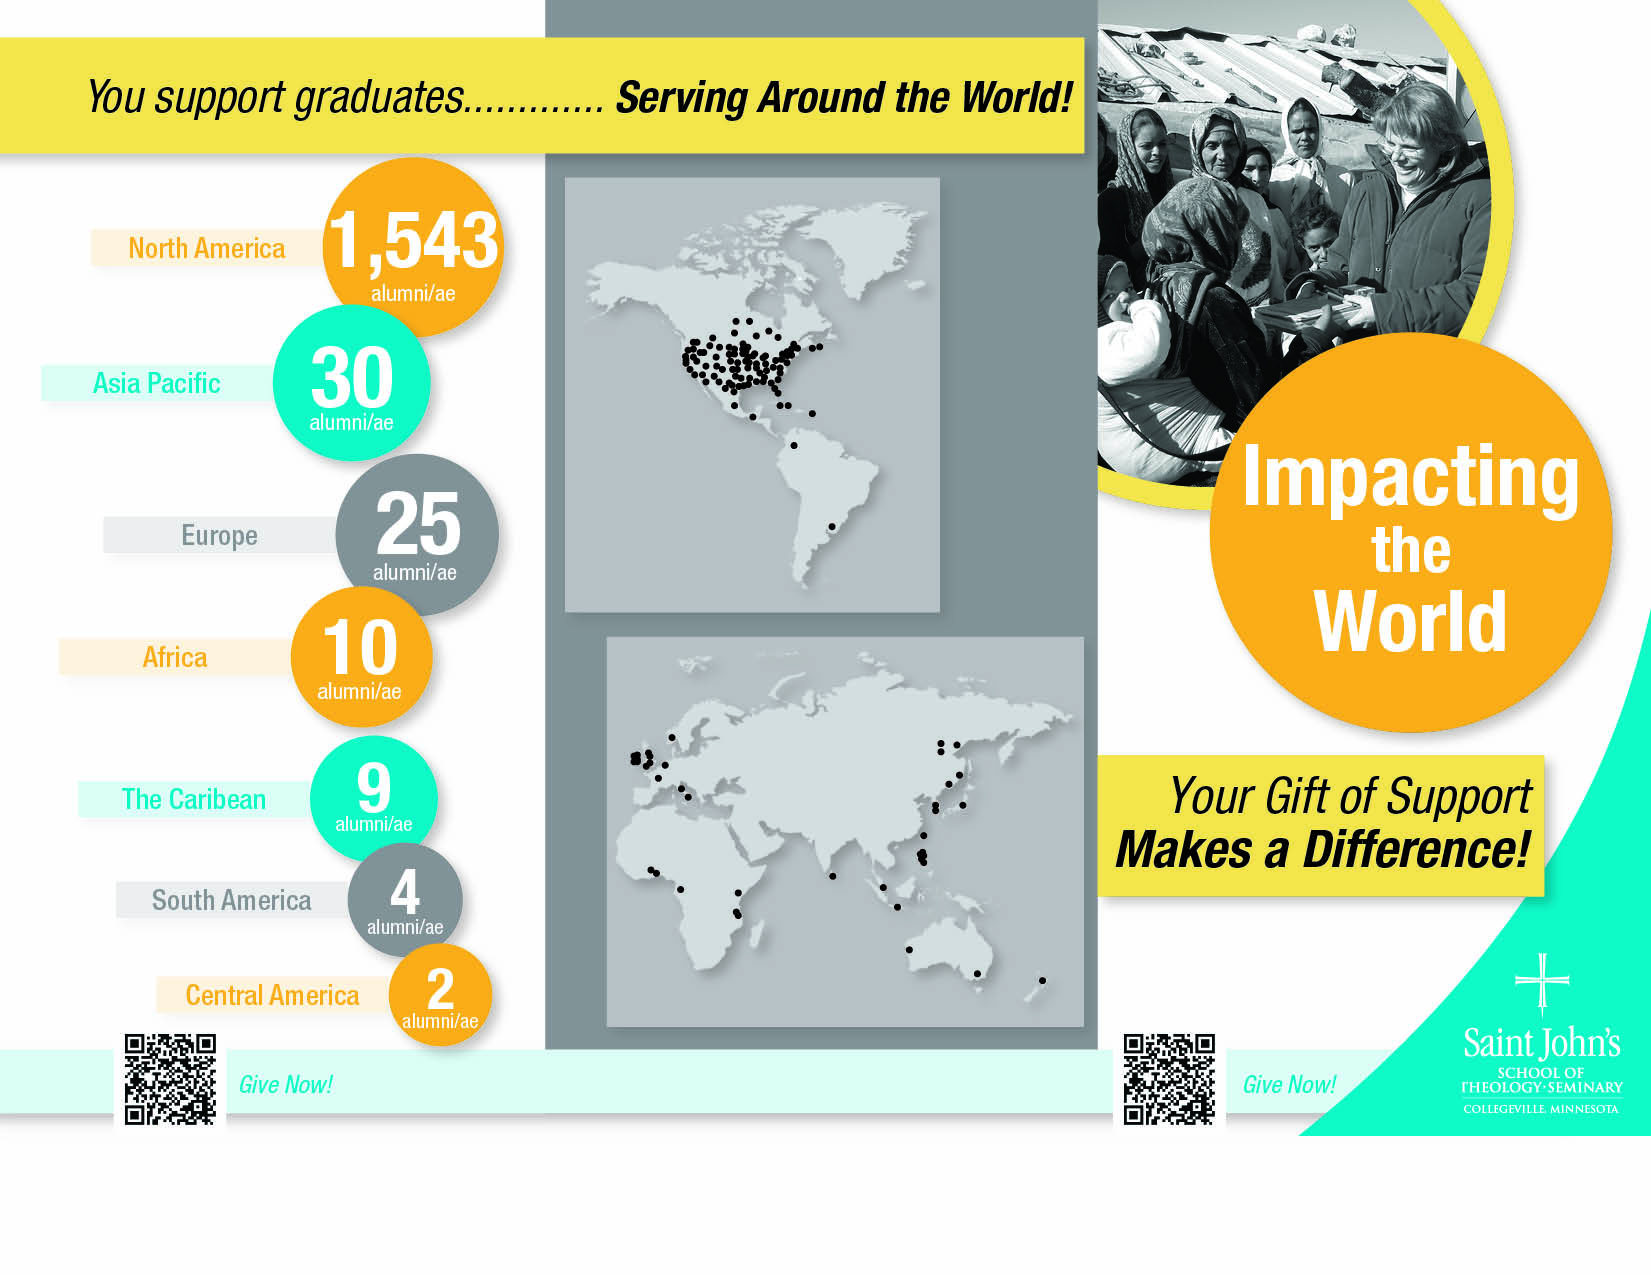 Impacting the world